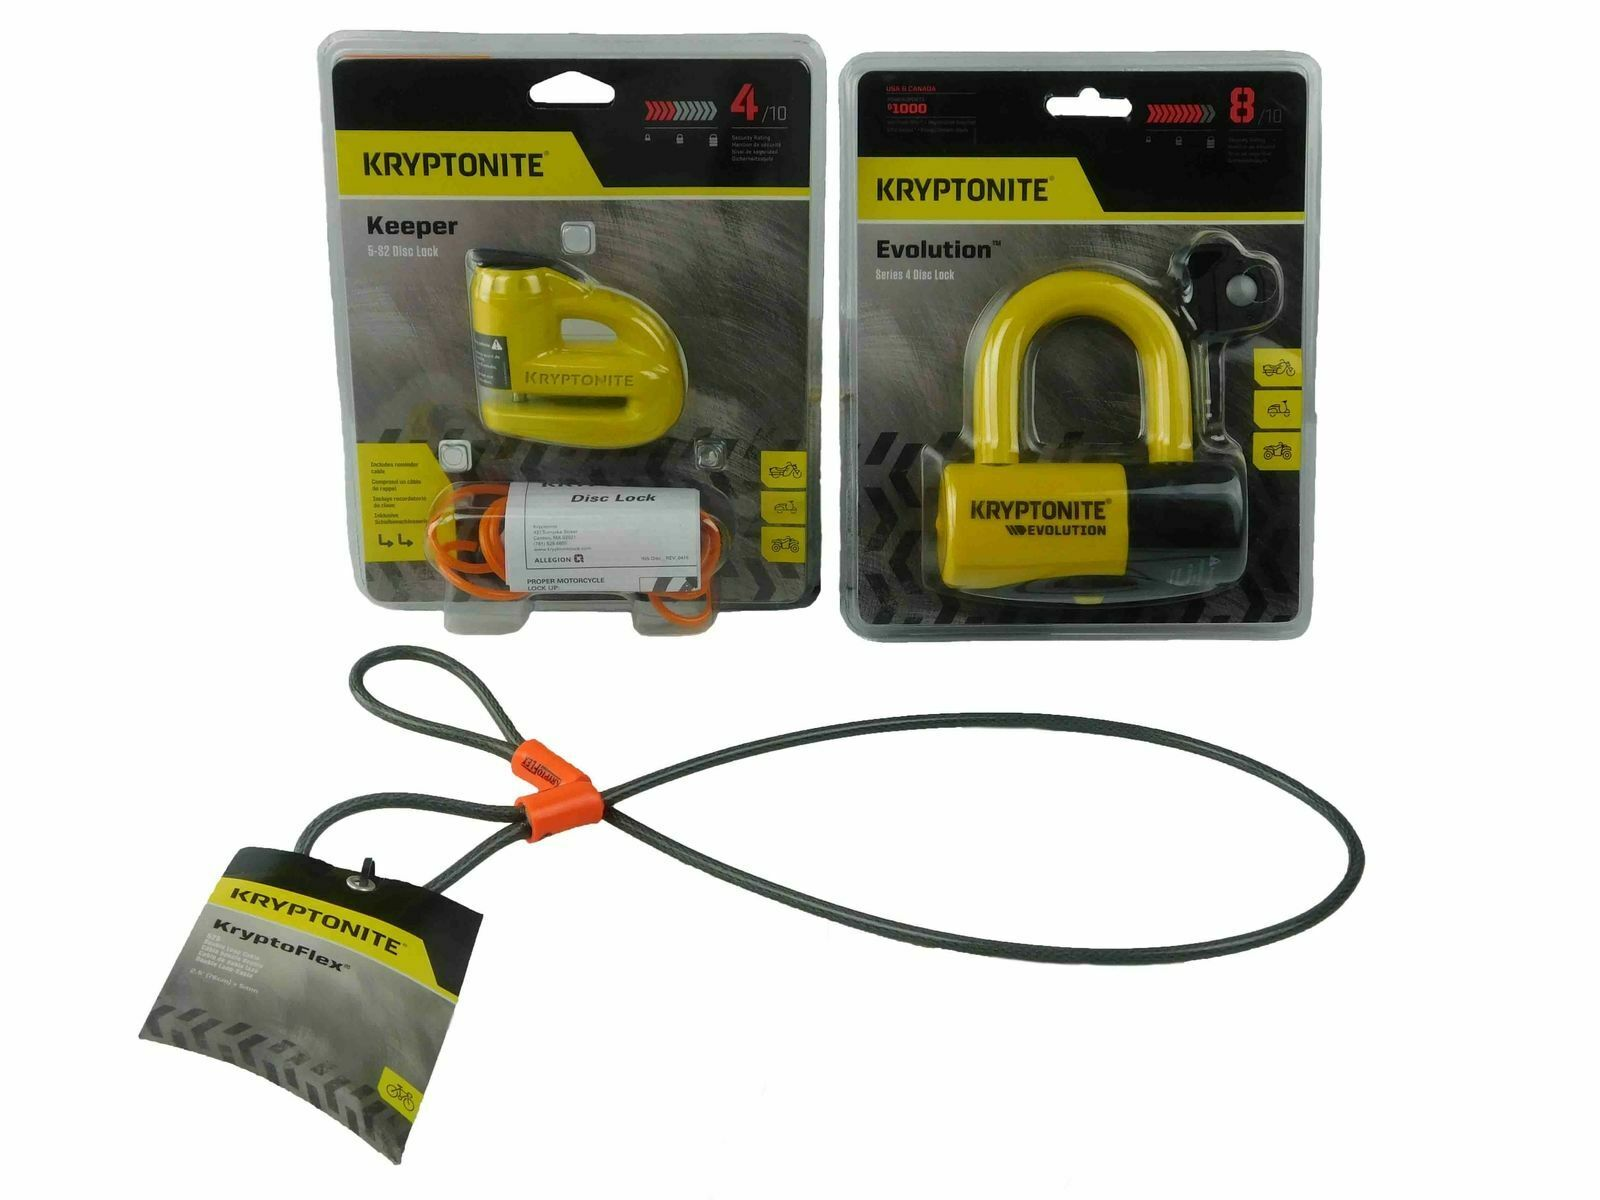 Kryptonite Keeper 5S2 Disc Lock gituttio wReminder e 525 2.5ft Looped cable